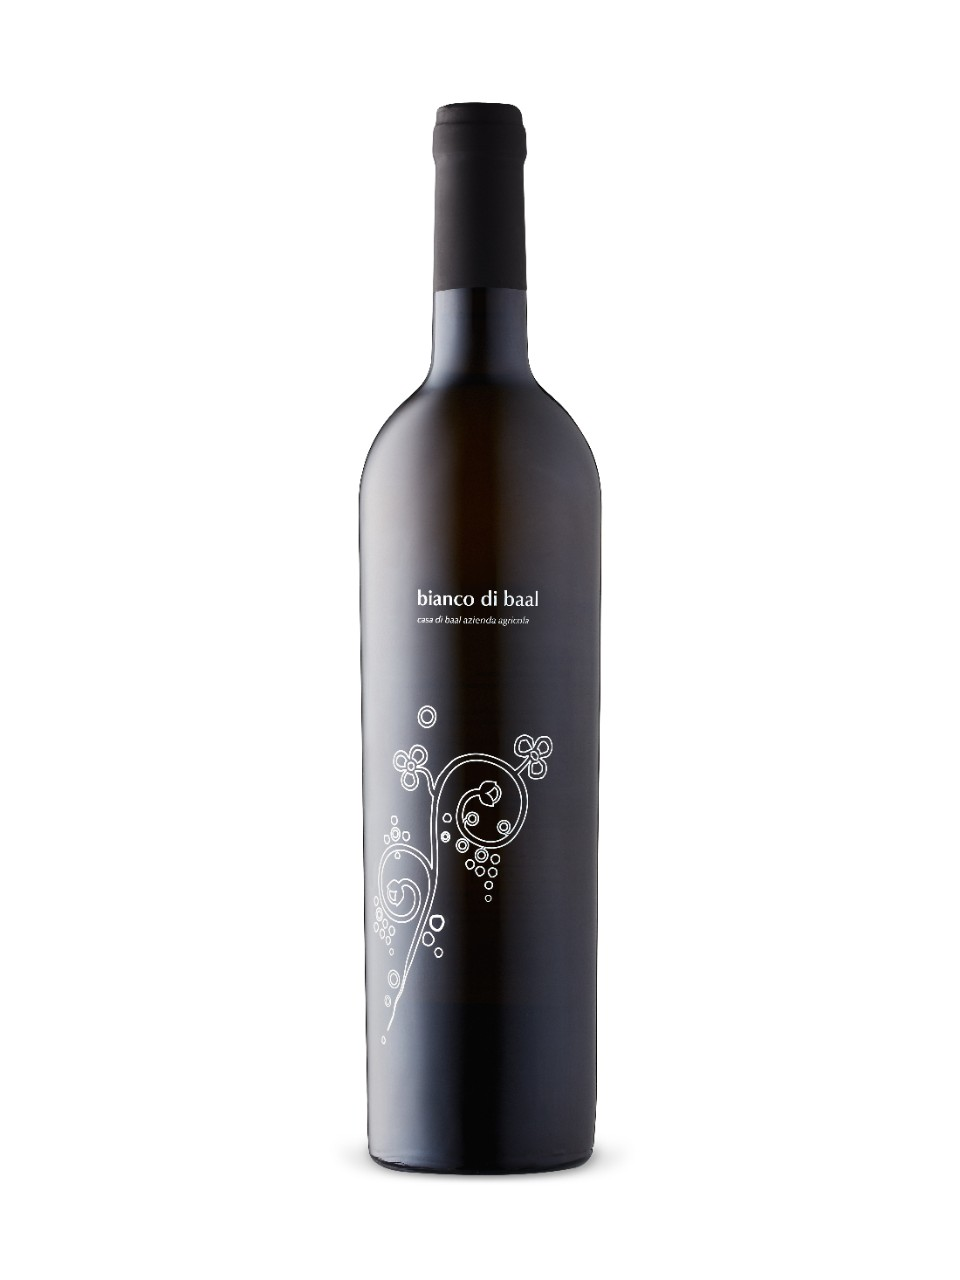 Image for Casa di Baal Bianco di Baal Campani 2017 from LCBO